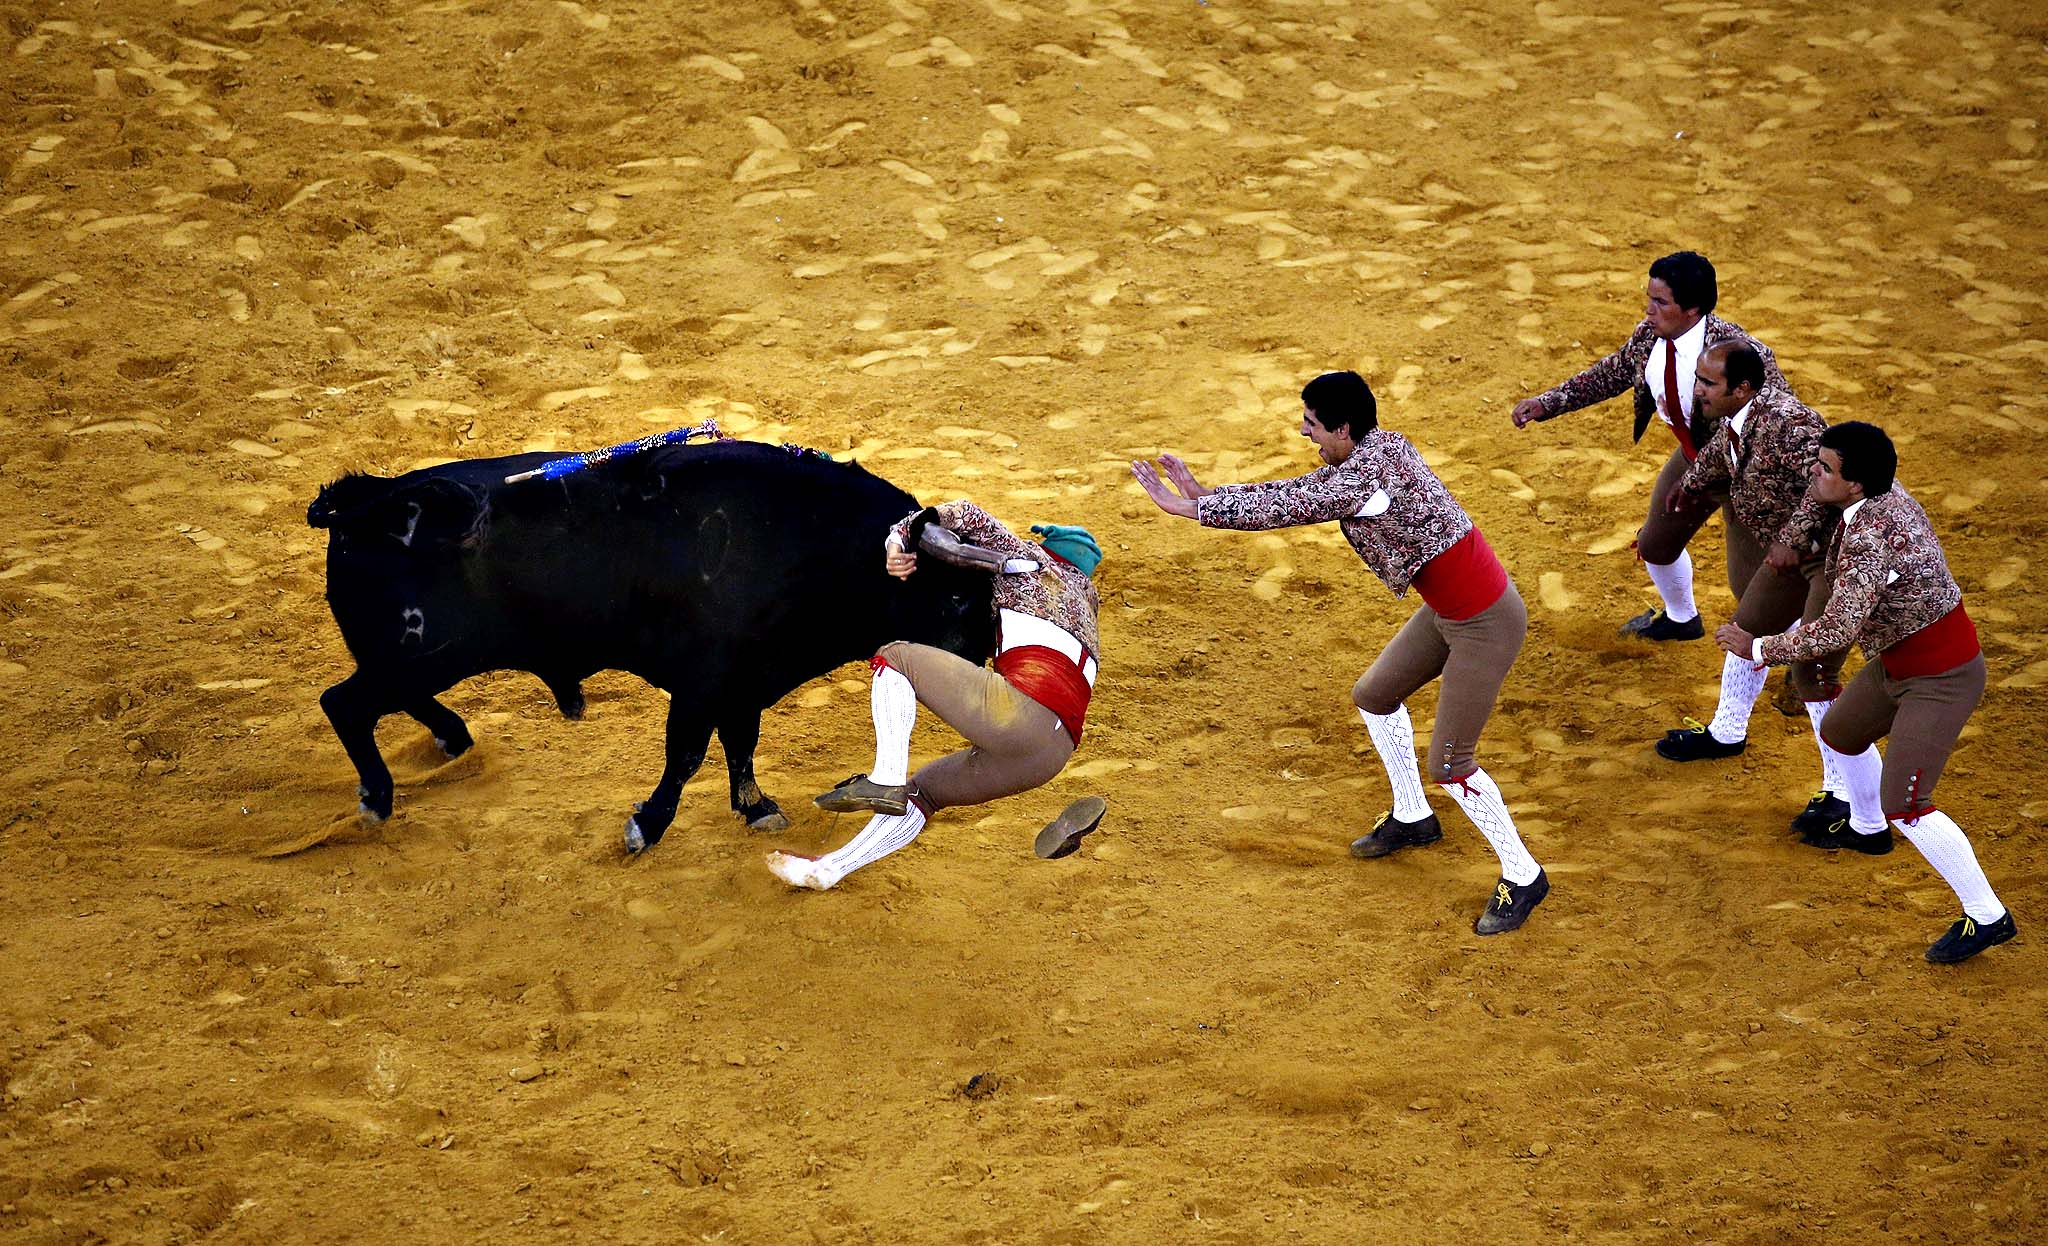 Members of Vila Franca Xira forcados group perform during a bullfight at Campo Pequeno bullring in Lisbon September 4, 2014. Forcados are traditional Portuguese bullfighters who catch bulls with their bare hands during the festival.